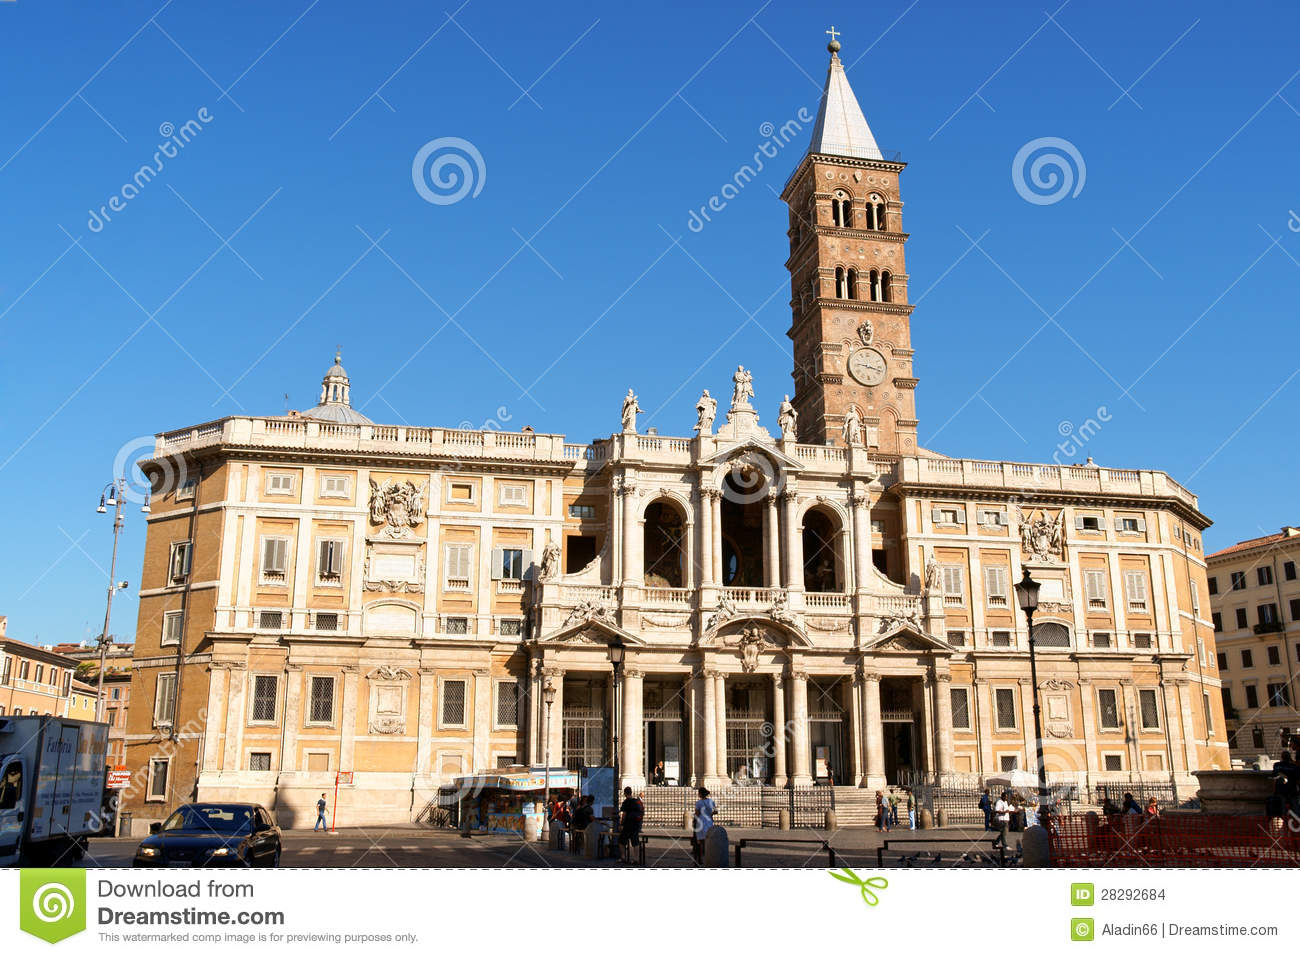 Basilica Of Saint Mary Major In Rome Editorial Stock Image - Image ...